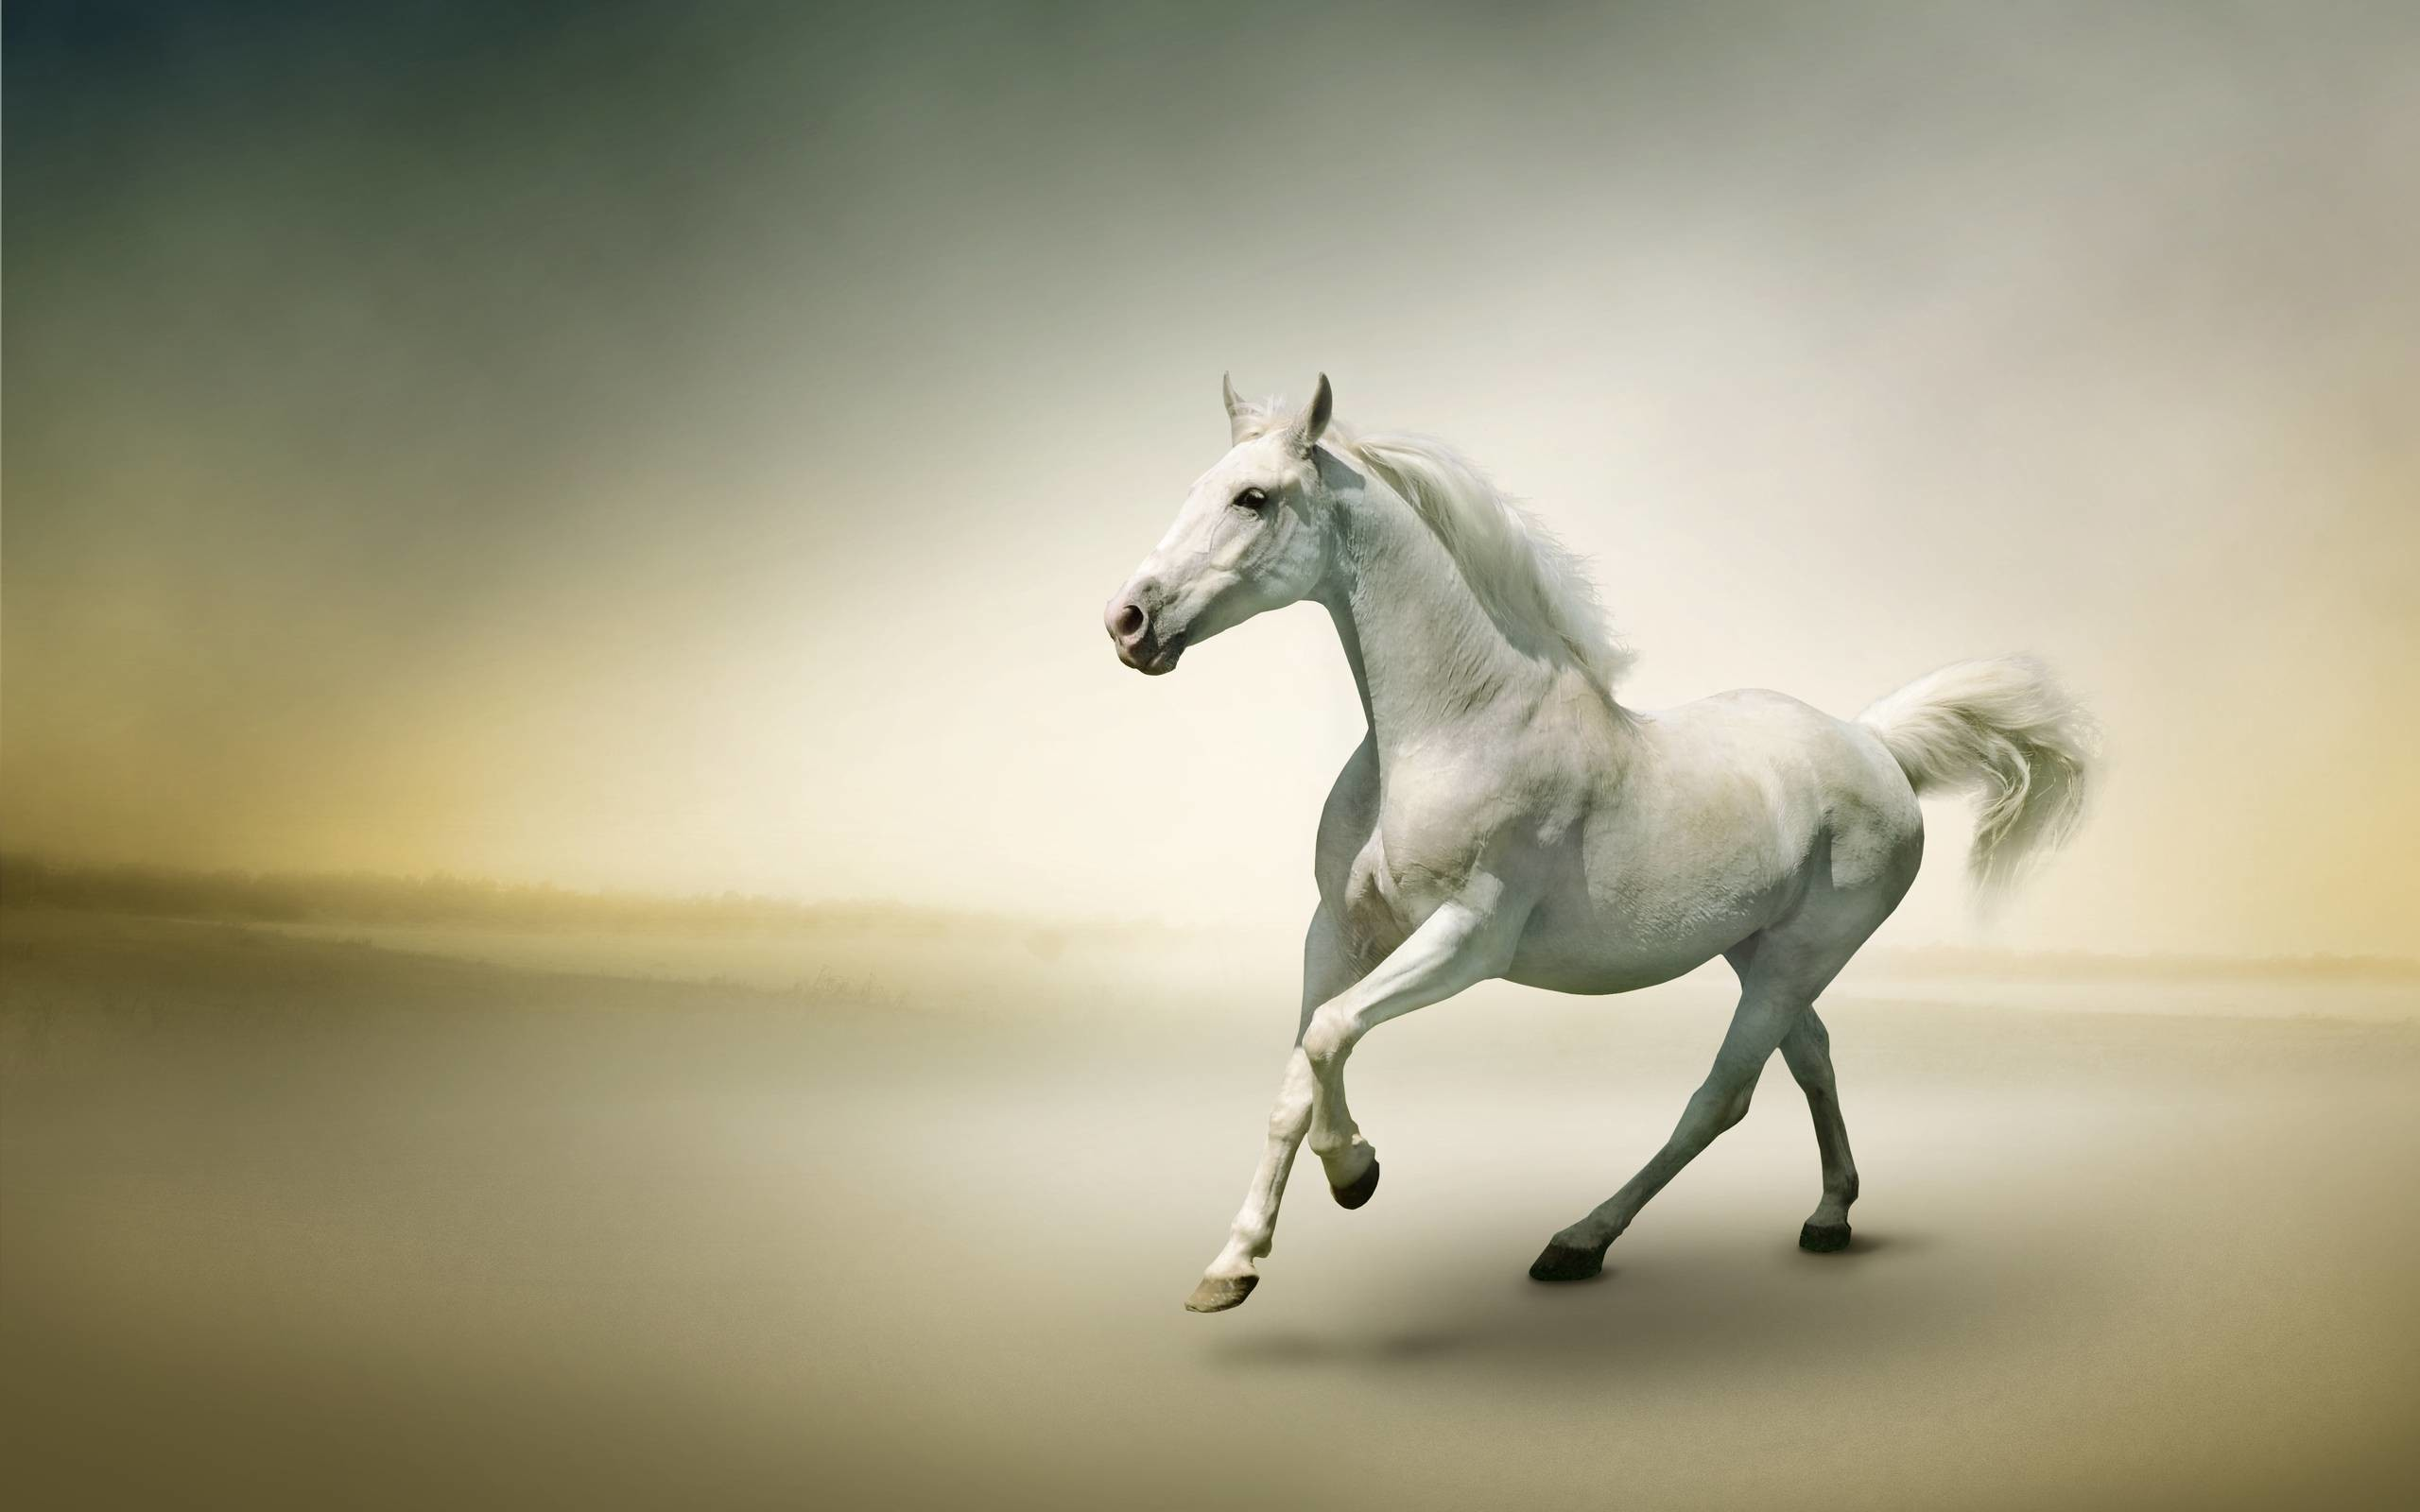 Res: 2560x1600, White Horse Photo Wallpaper #938 Wallpaper computer | best website .